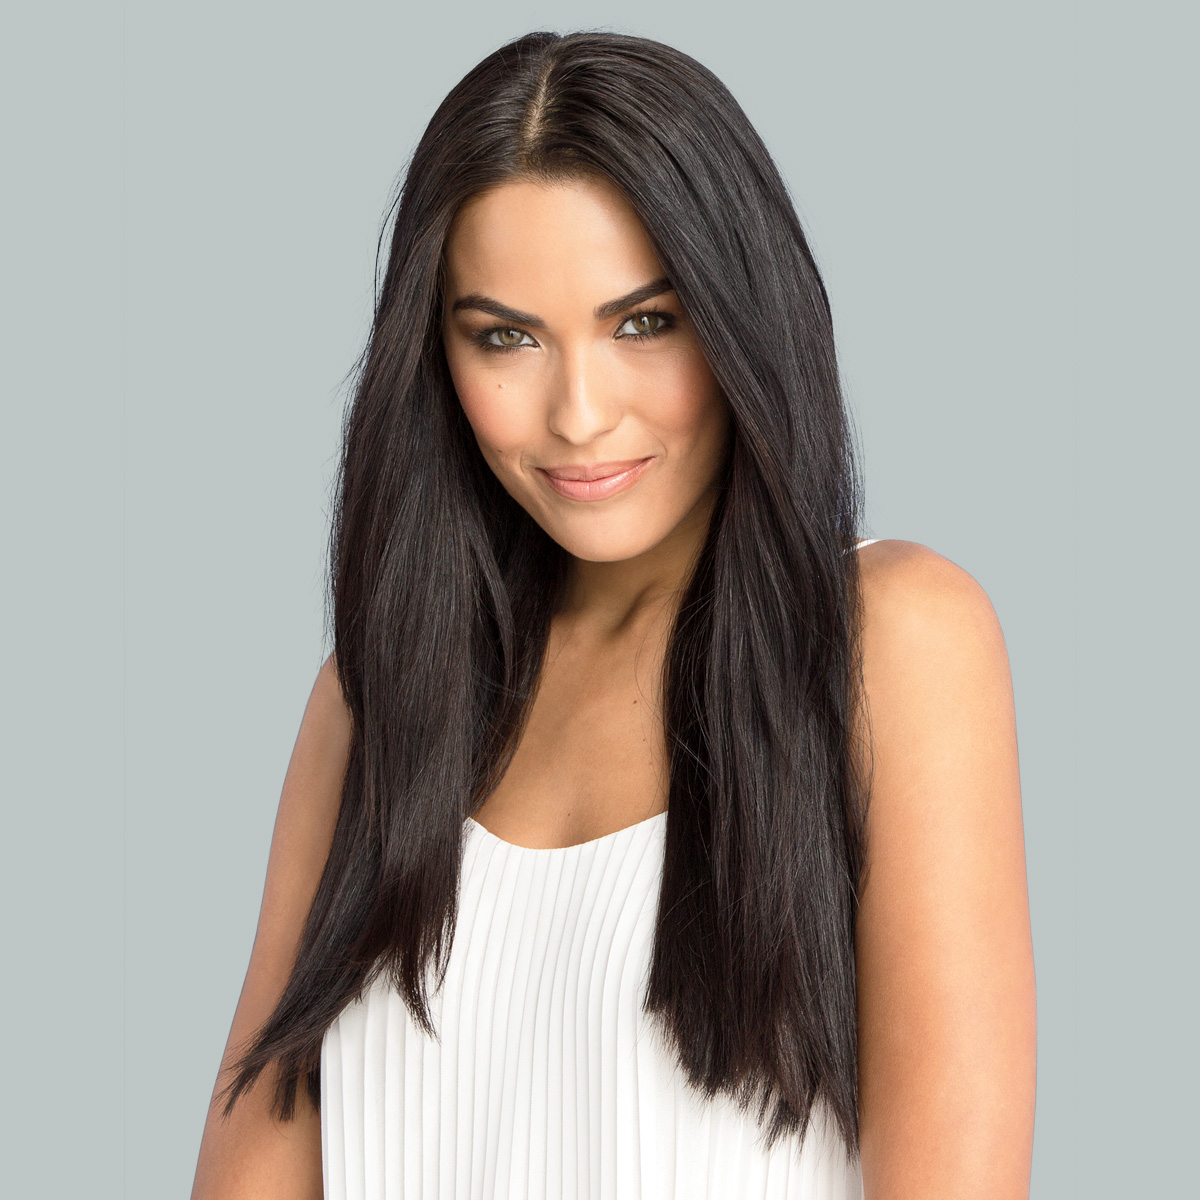 Signature Style hair model with straight brunette hair